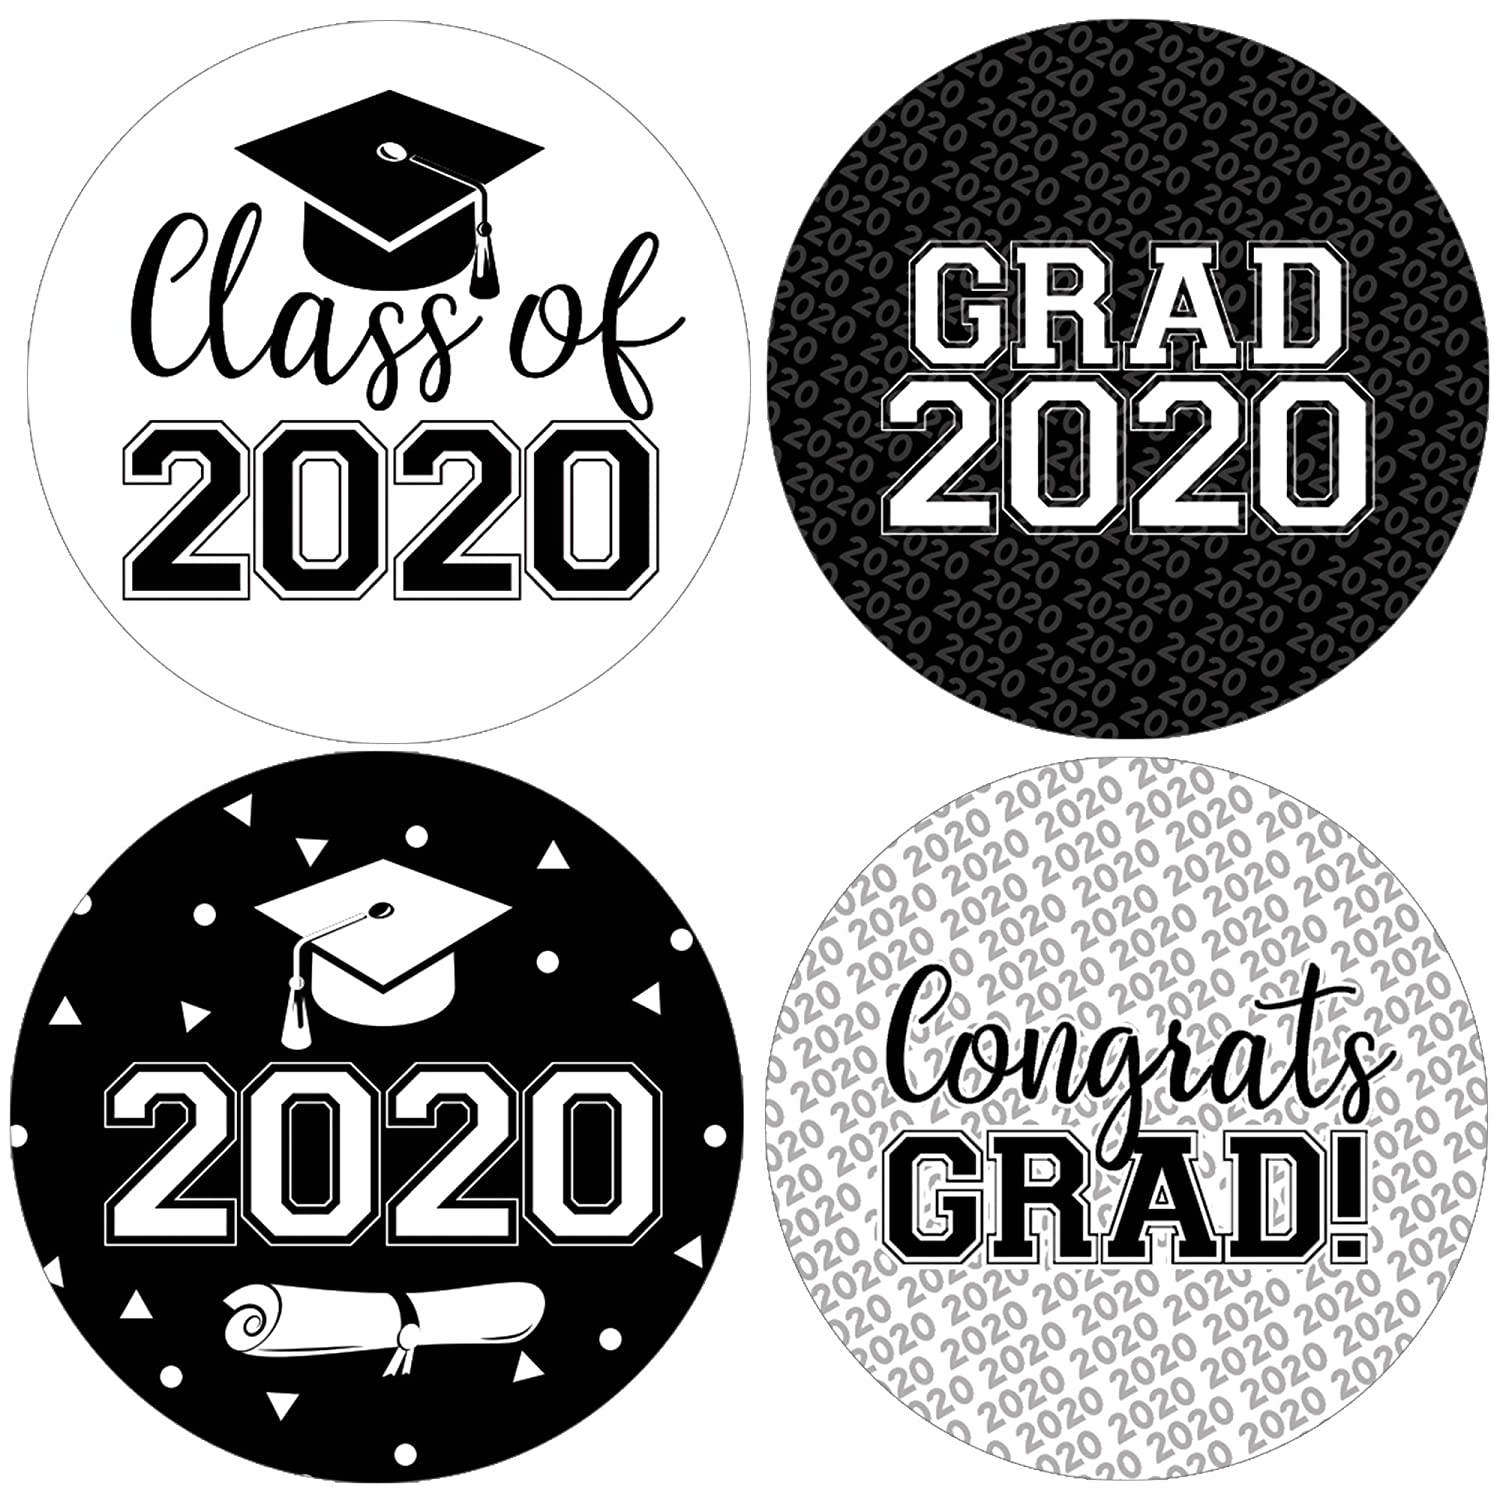 2020 Graduation Images.Class Of 2020 Graduation Party Favor Labels 1 75 In 40 Stickers Black And White